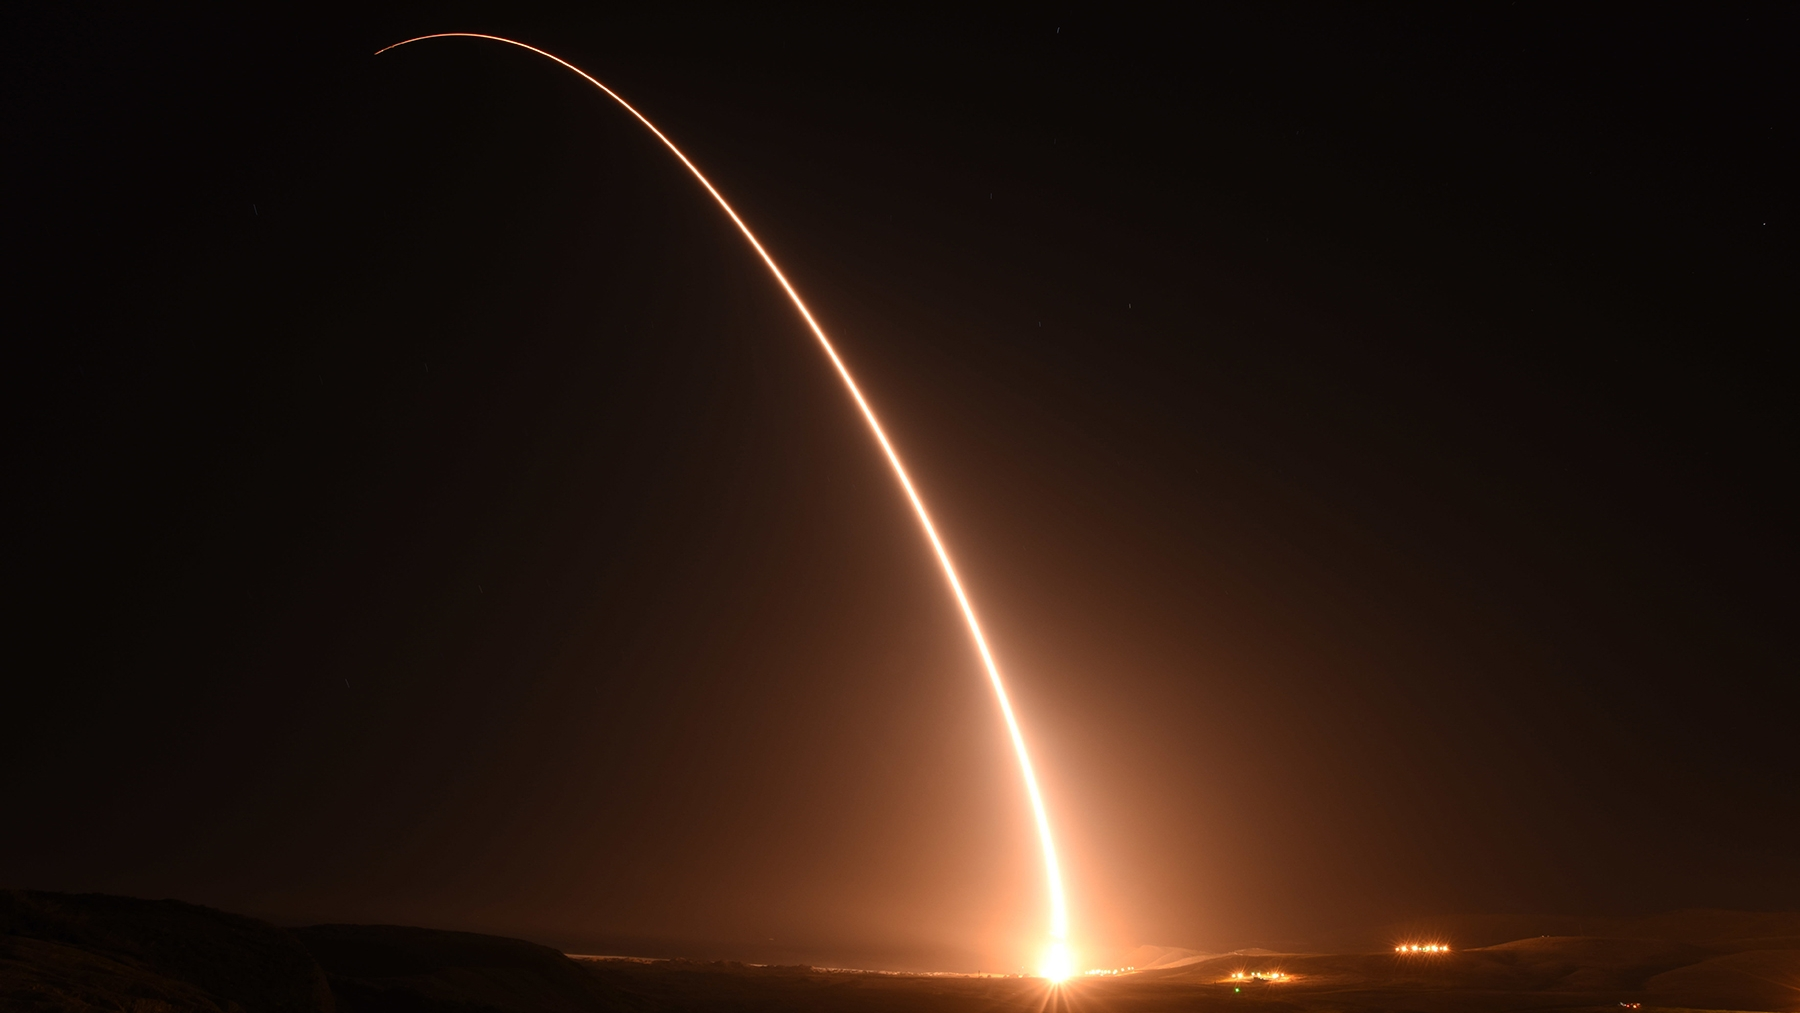 180629_missile_launch.jpg